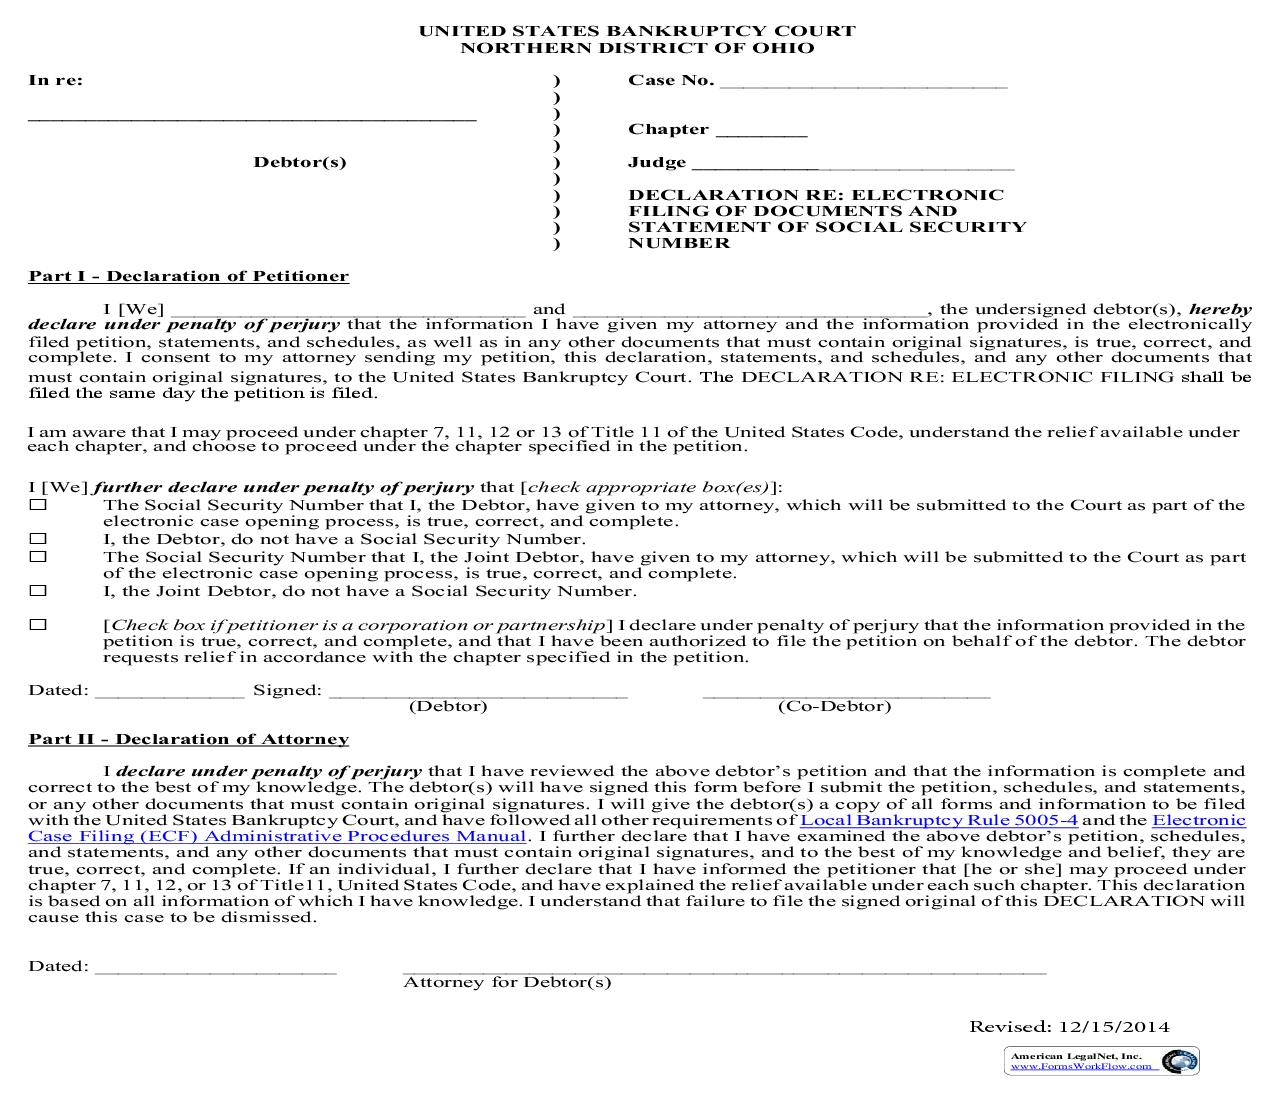 Declaration Re Electronic Filing Of Documents And Statement Of Social Security Number | Pdf Fpdf Doc Docx | Ohio